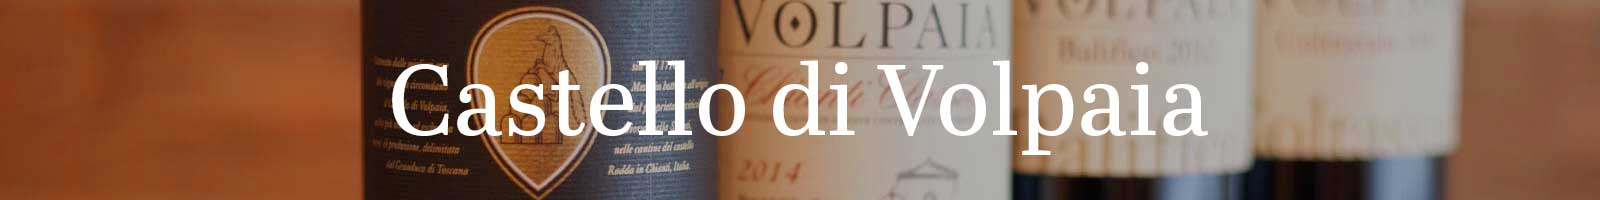 Essential Winemakers of Italy: Castello di Volpaia